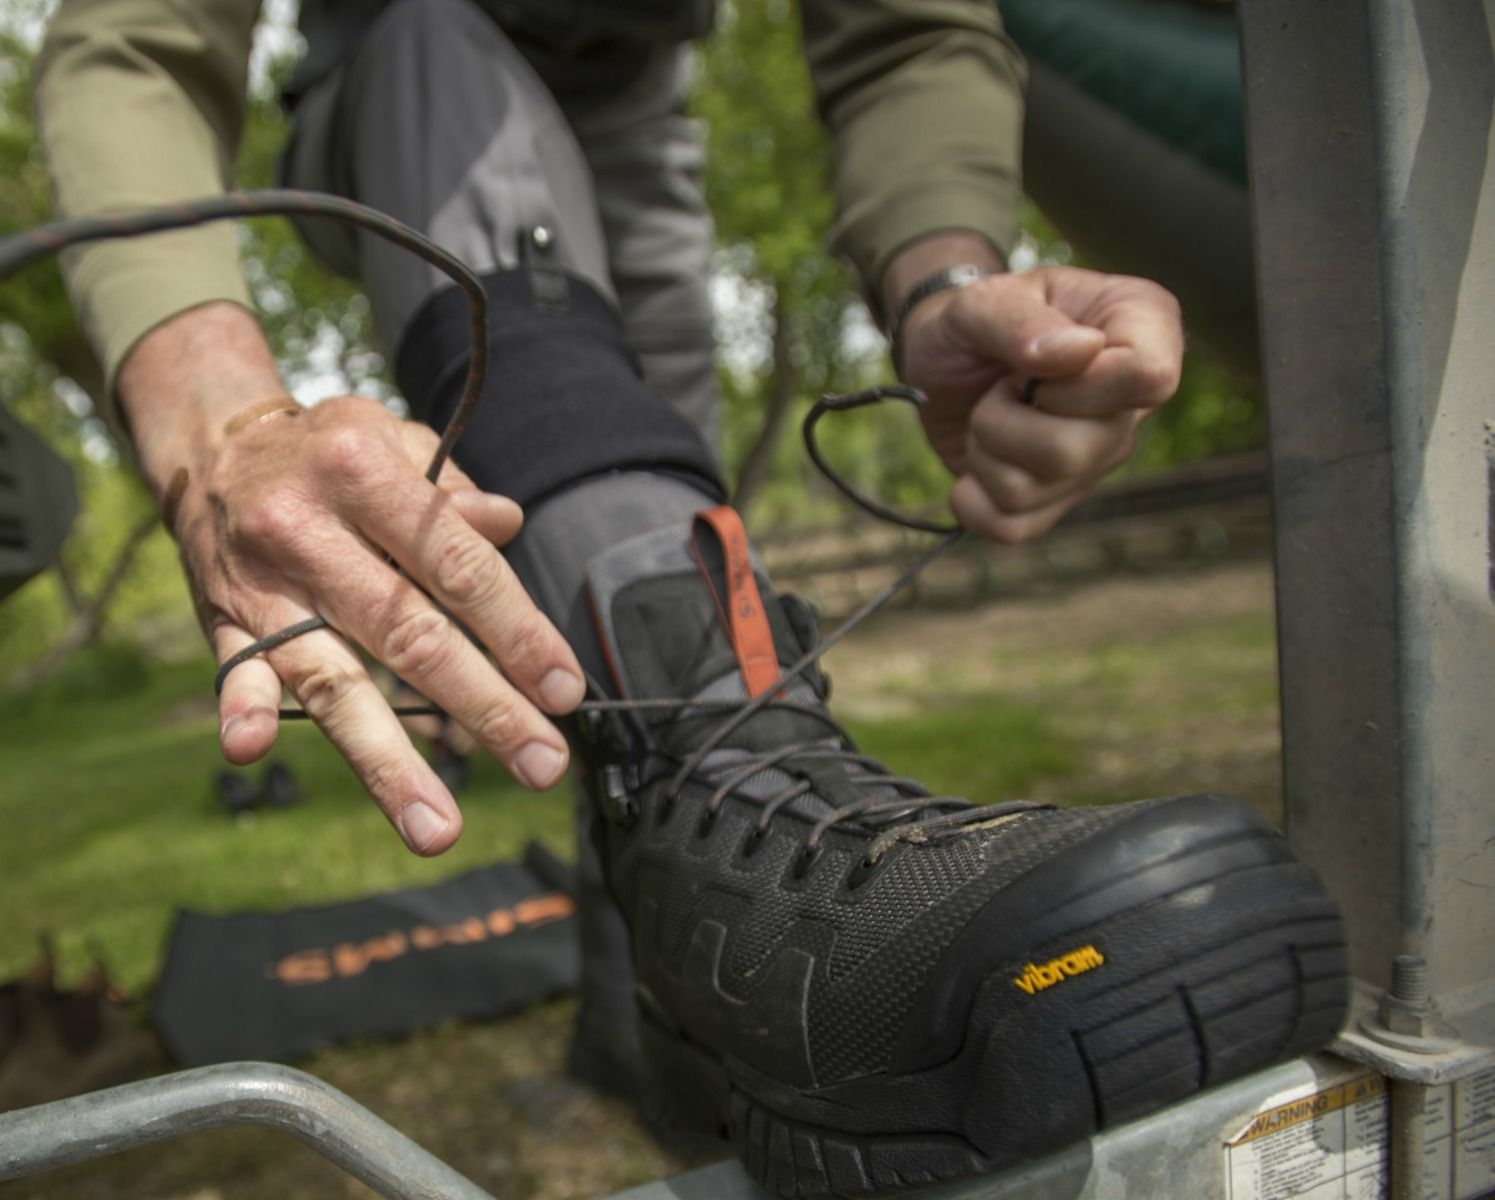 Wading Boots Simms G4 Pro Vibram Soles Carbon - In Action